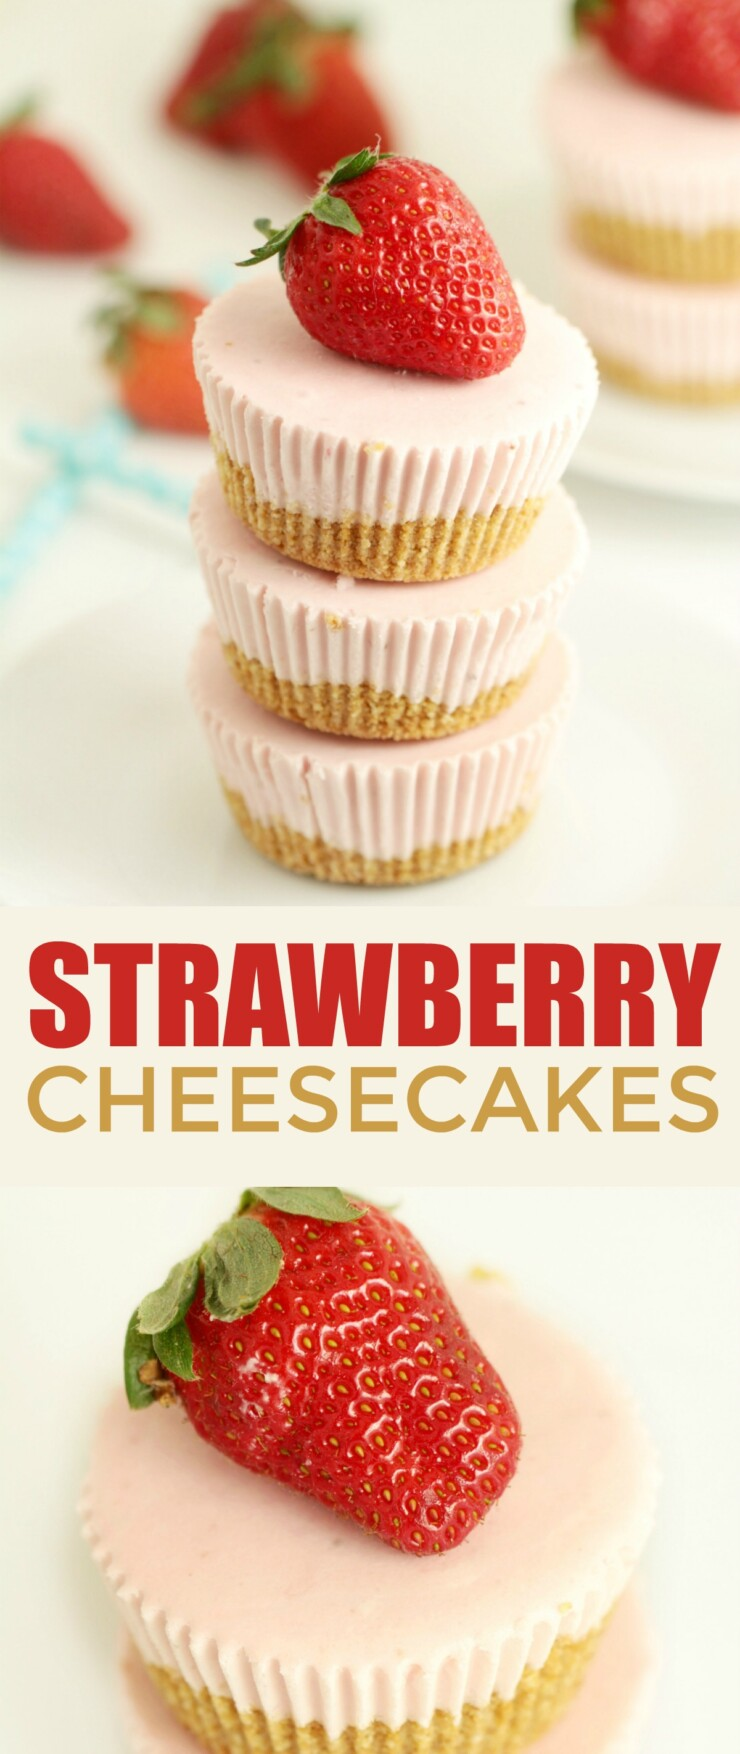 These Mini No Bake Strawberry Cheesecakes are beyond easy to make and are a great dessert year round. They features a buttery cookie crust topped off with a strawberry cheesecake filling – delicious frozen or at room temperature.